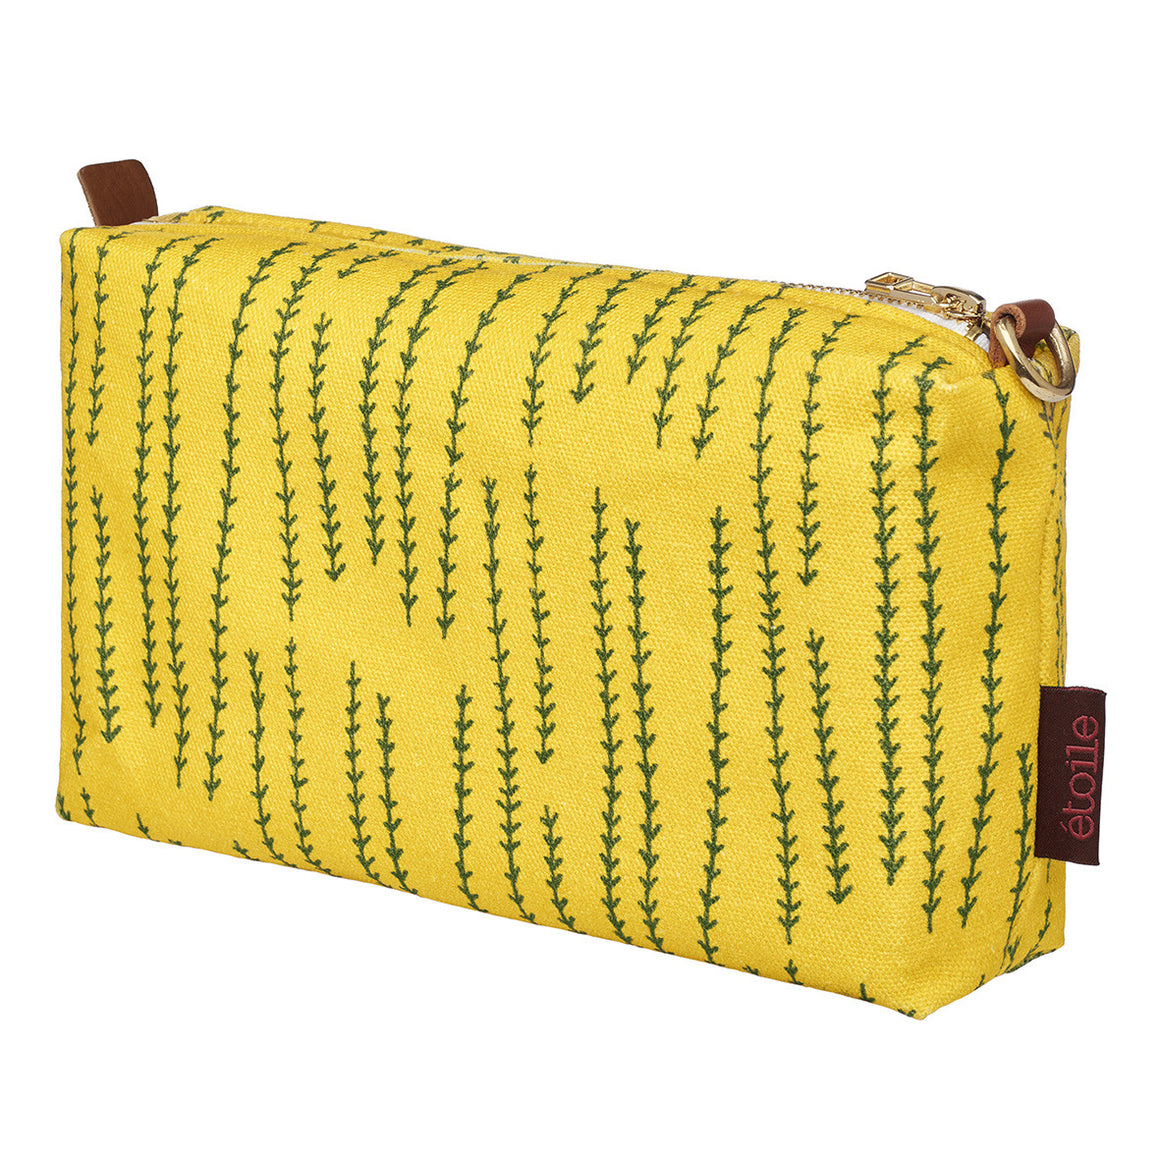 Graphic Rosemary Sprig Pattern Printed Cotton Canvas Wash Bag in Mustard Yellow and Olive Green